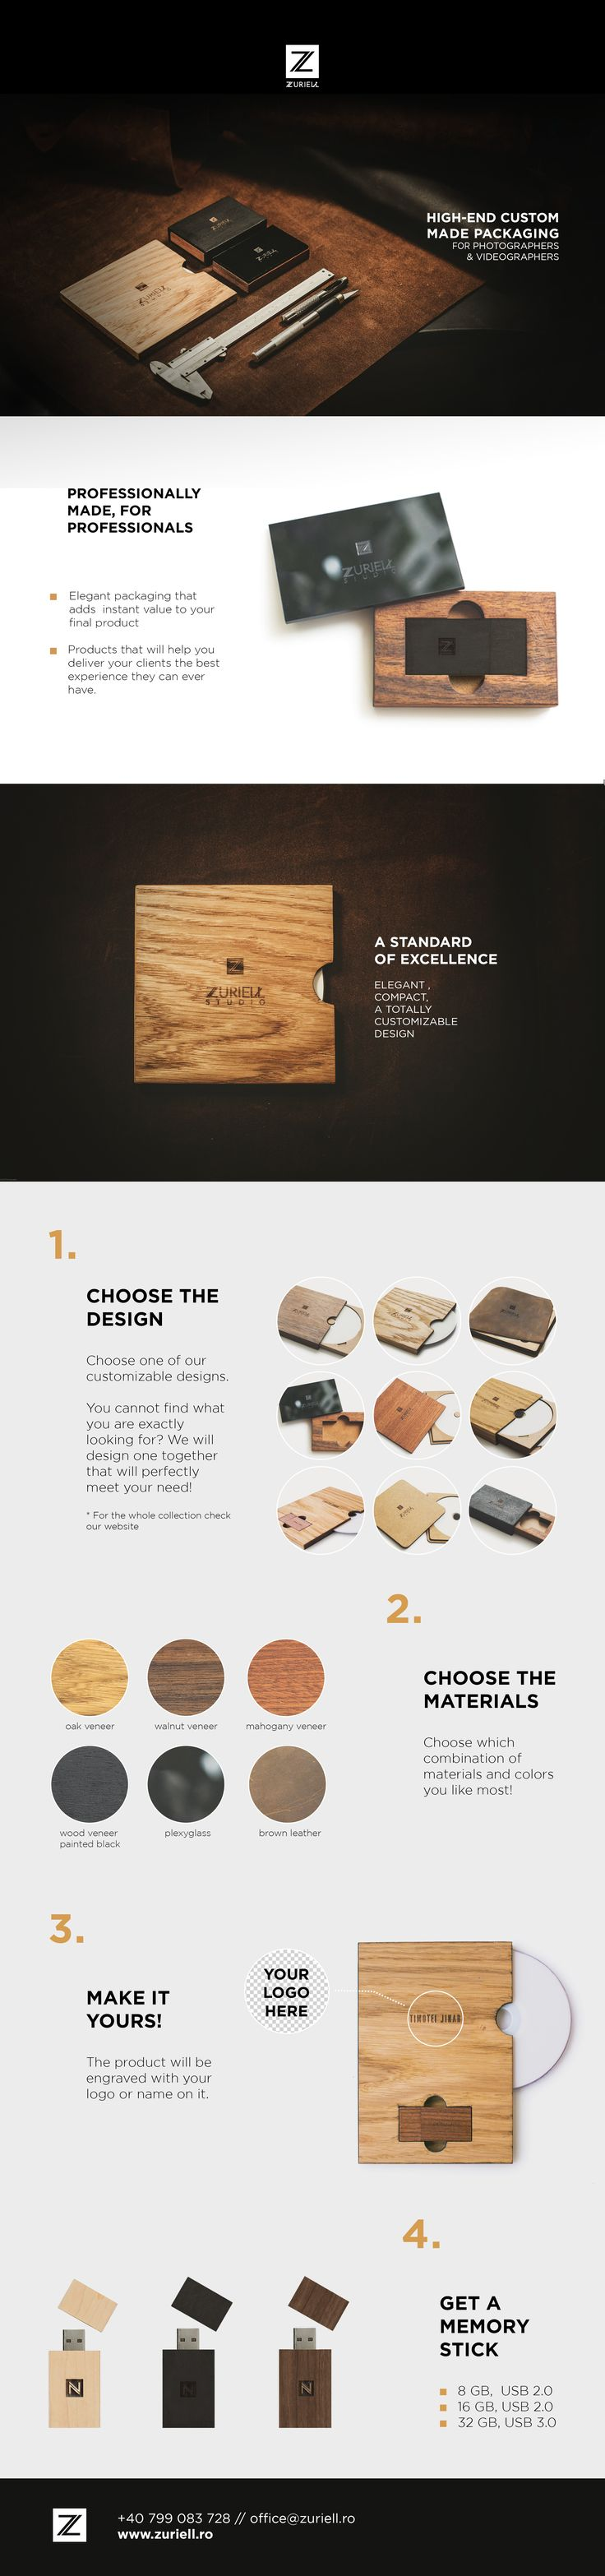 Photography / Videography Packaging | Elegant and compact | Leather, Wood | CD cases | USB Flash Drives & Cases | Brand Identity